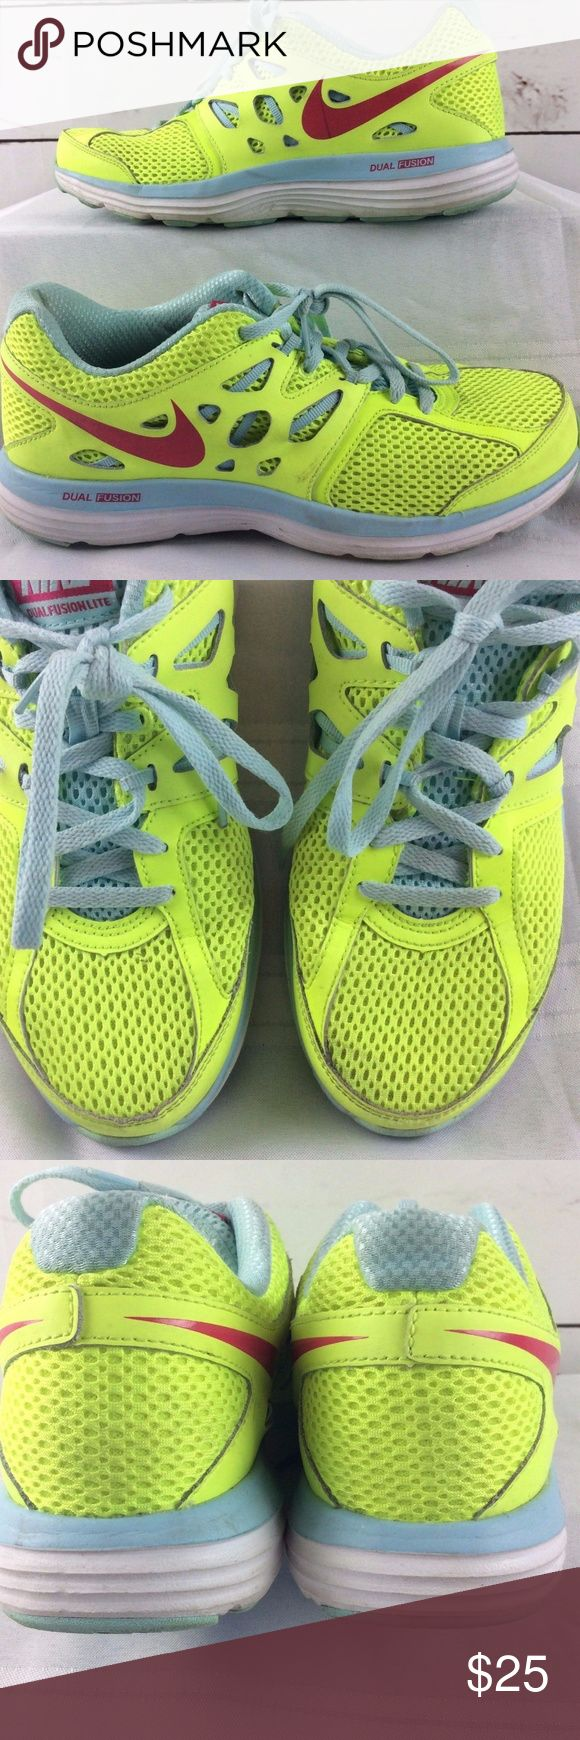 Nike Dual Fusion Lite Shoes Nike Womens Sneaker Size 8 Dual Fusion Lite Neon Green Light Blue Running Shoes.  Good used condition. Nike Shoes